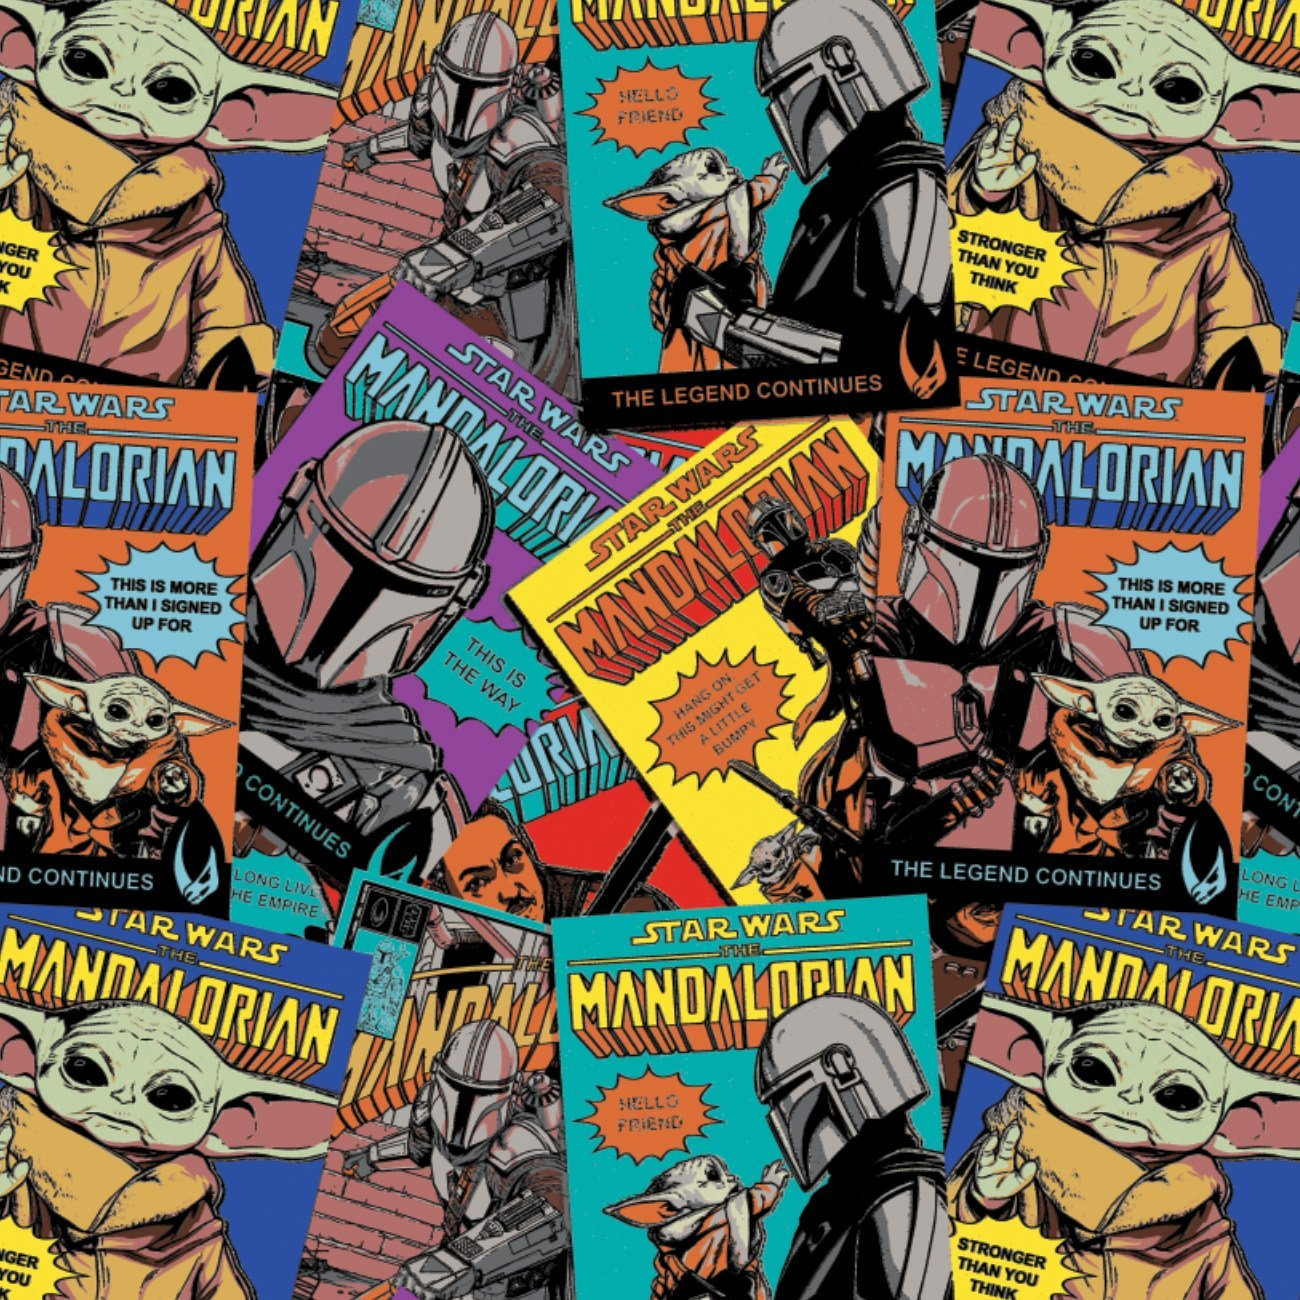 Star Wars - The Mandalorian - Comic Posters - Multi